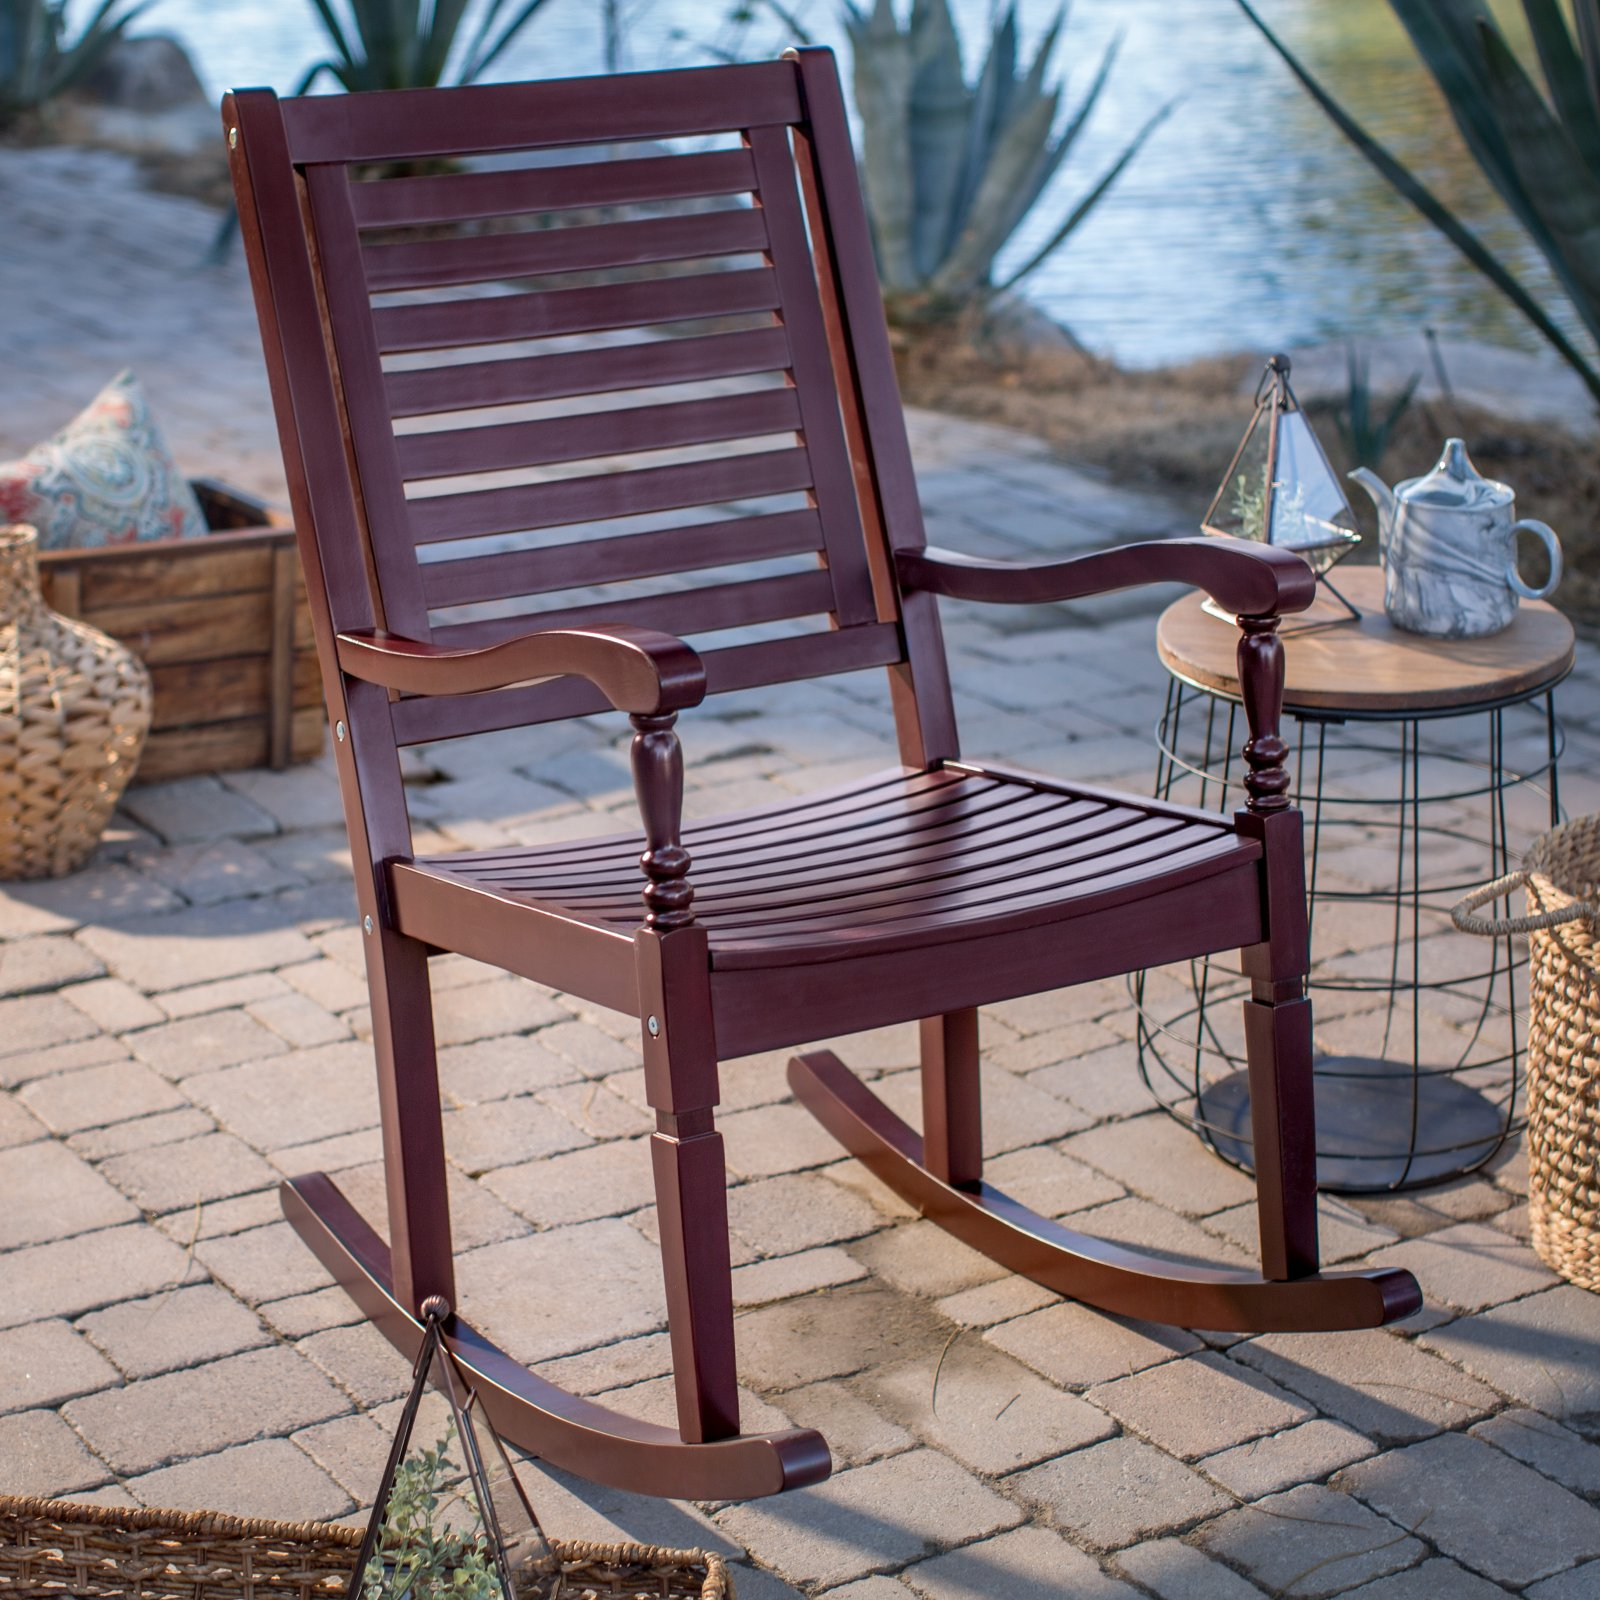 Belham Living Cottonwood Indoor/Outdoor Wood Rocking Chair   Burgundy